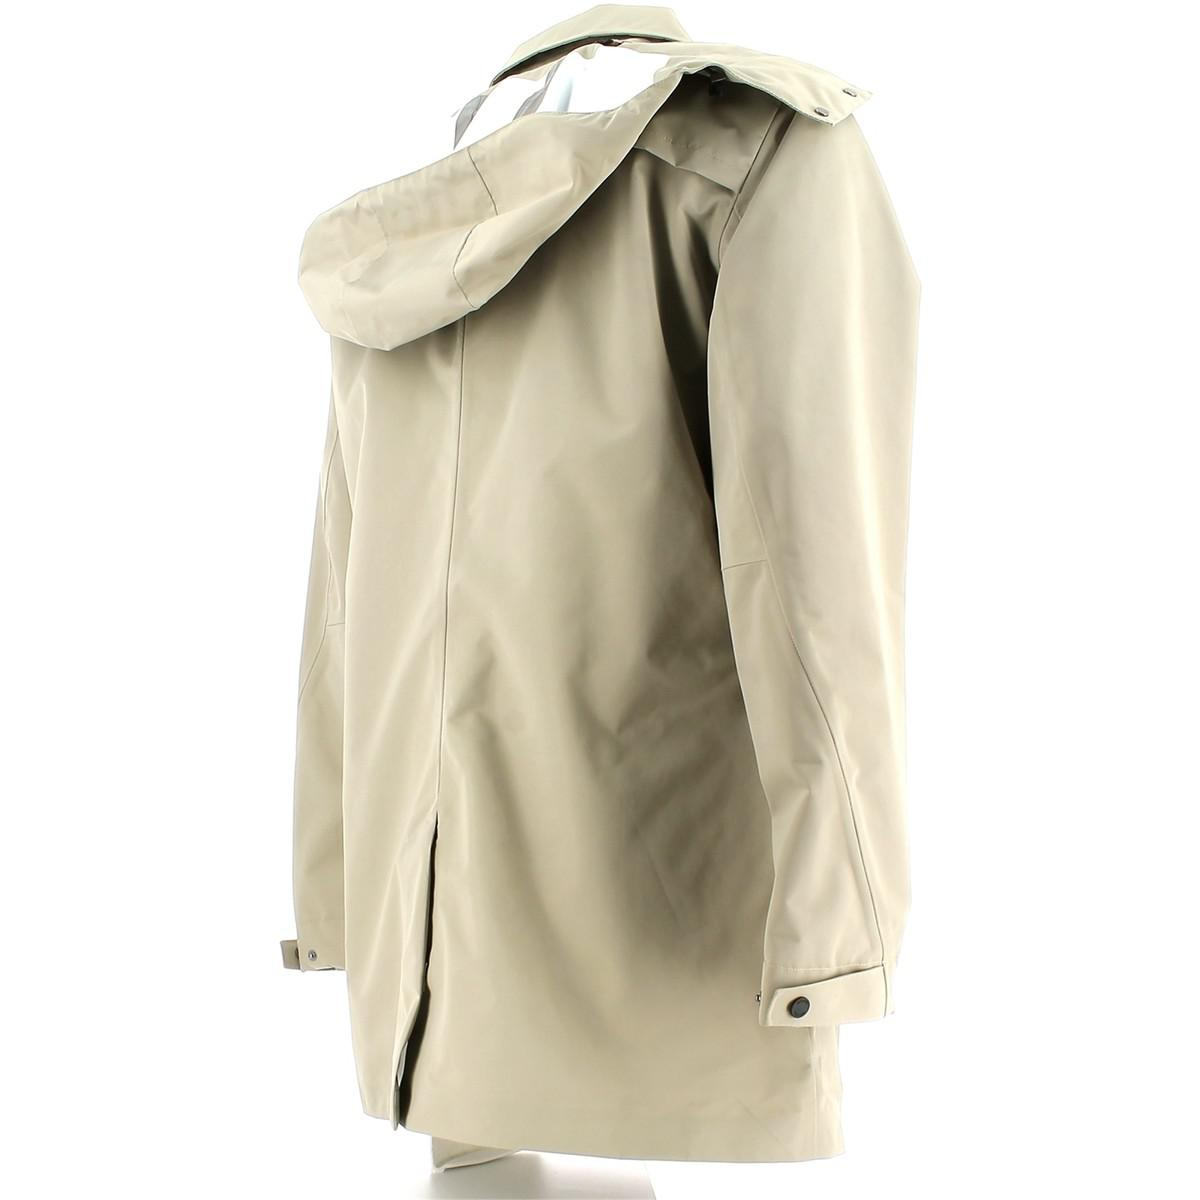 Geox M5221c T1836 Jacket Man Mid Sand Men's Jacket In Beige in Natural for Men